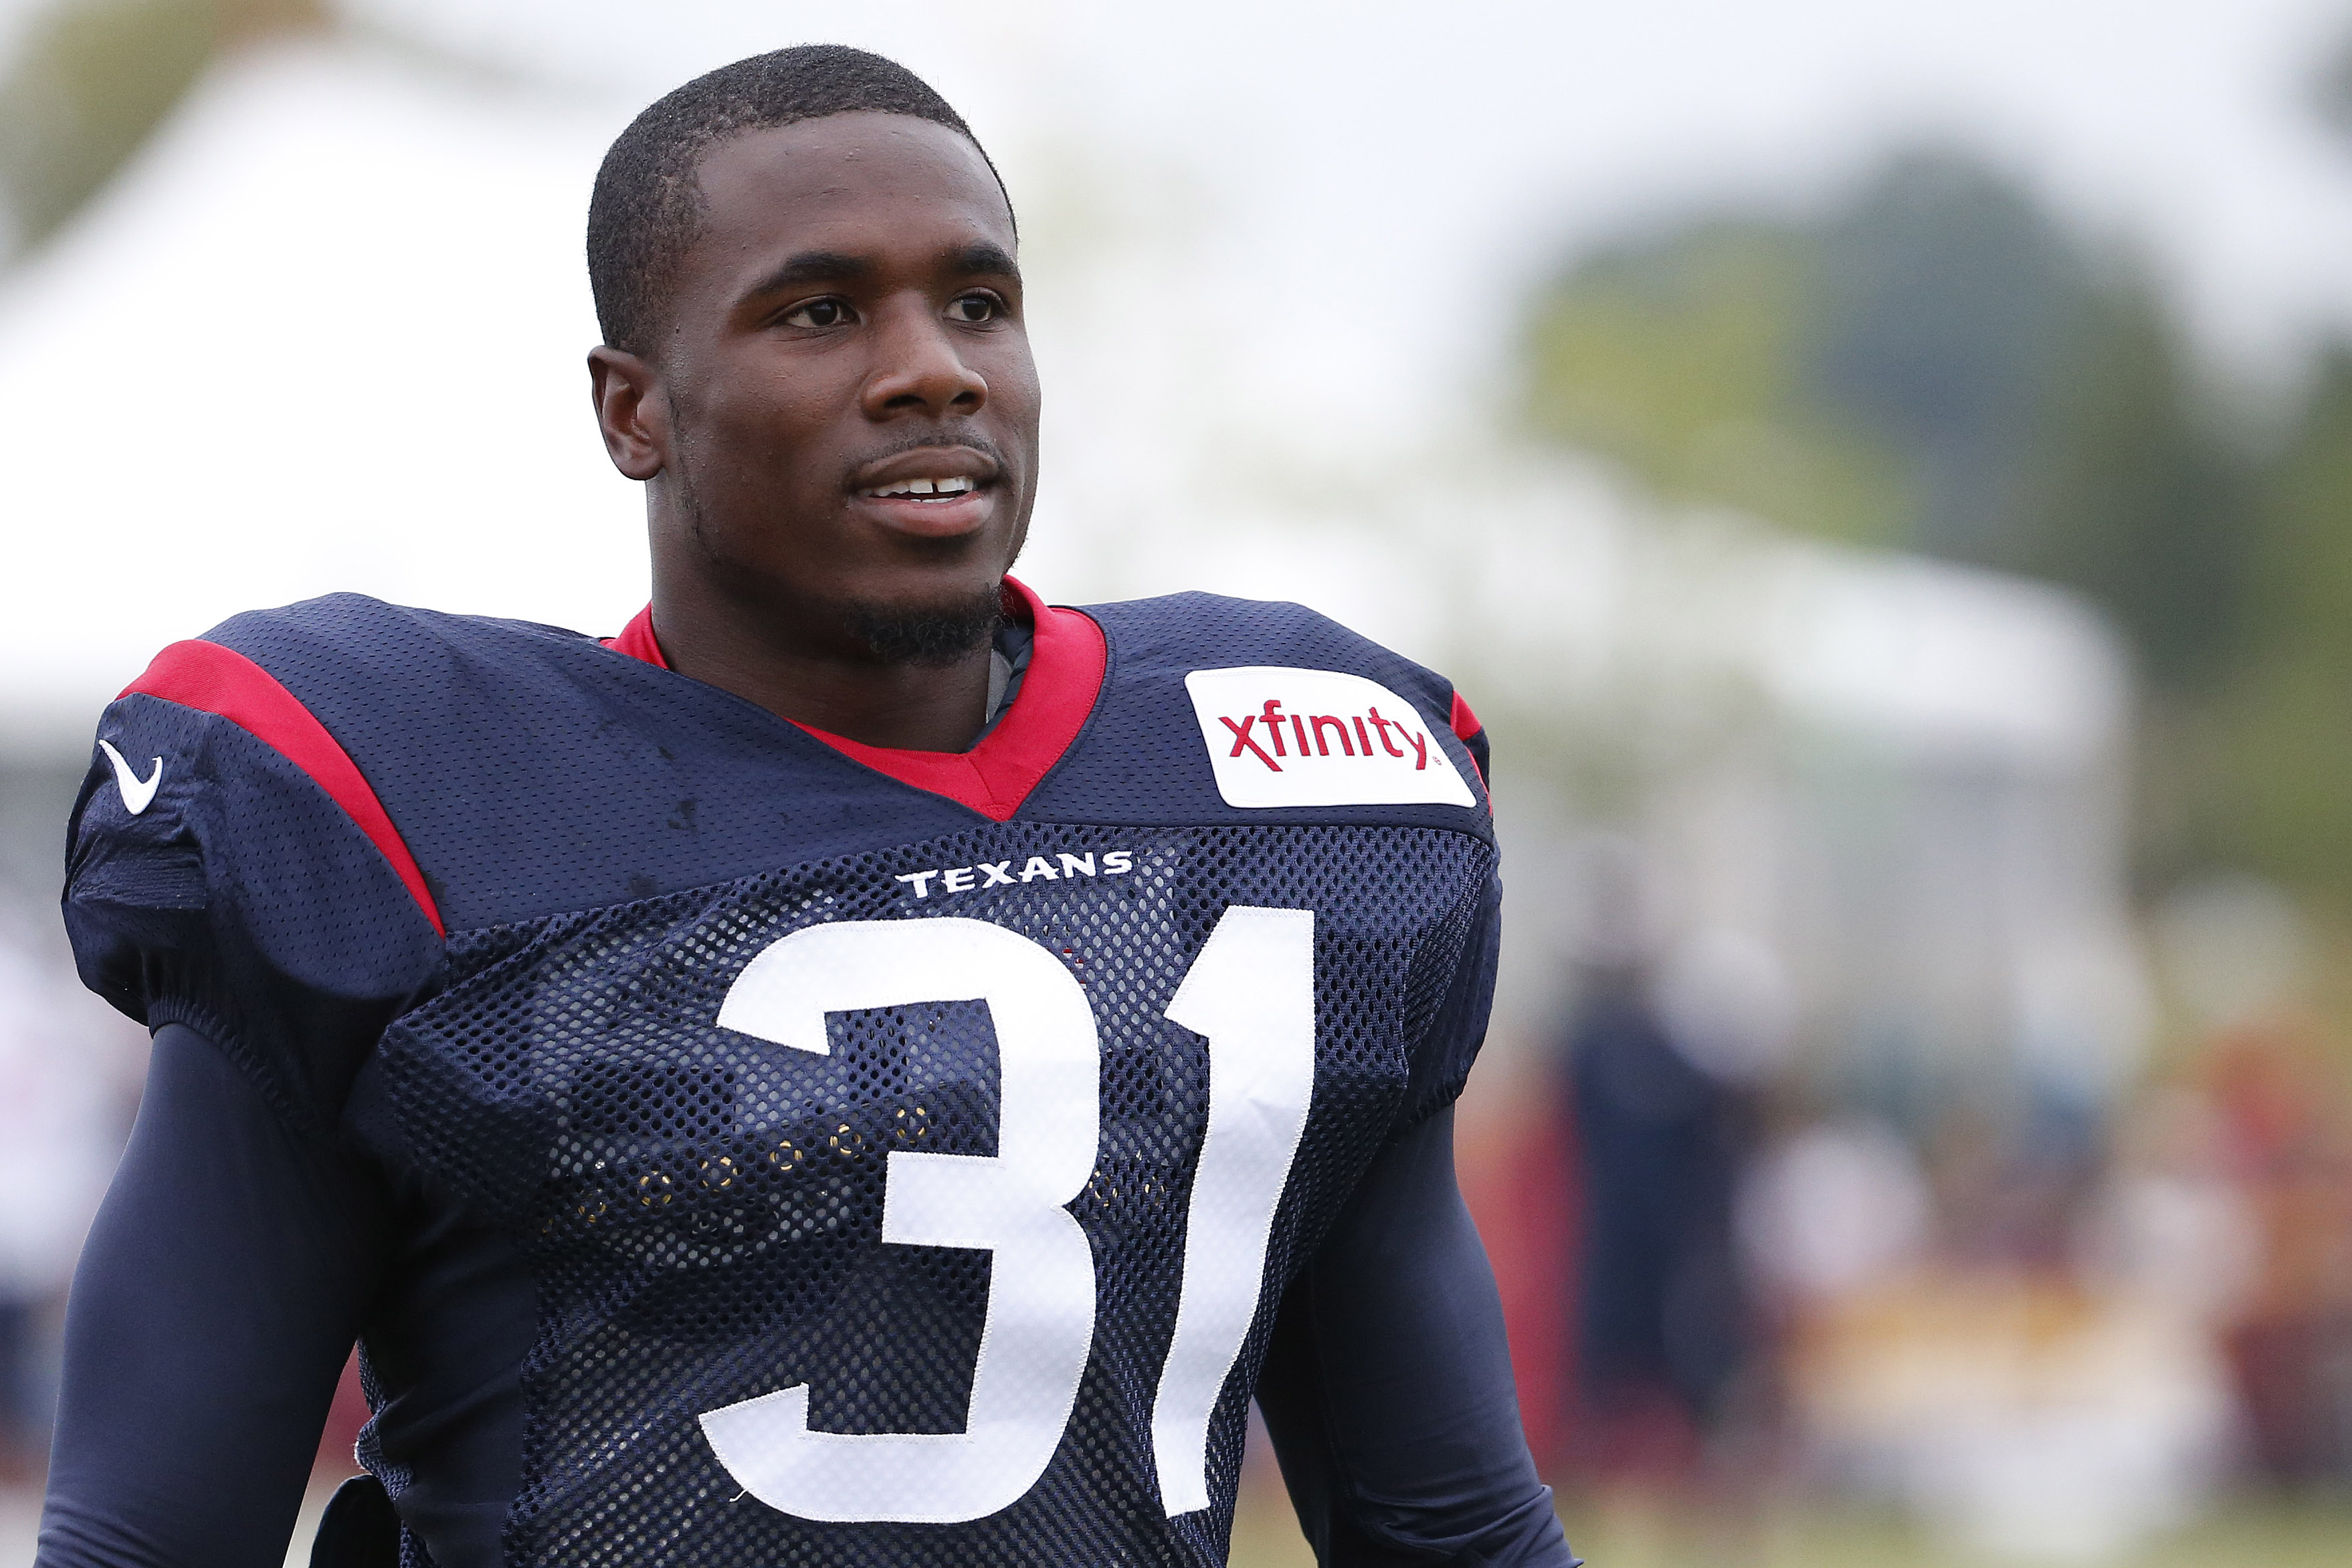 Texans CB and breakout Hard Knocks star Charles James II awaits his fate - as do we all!